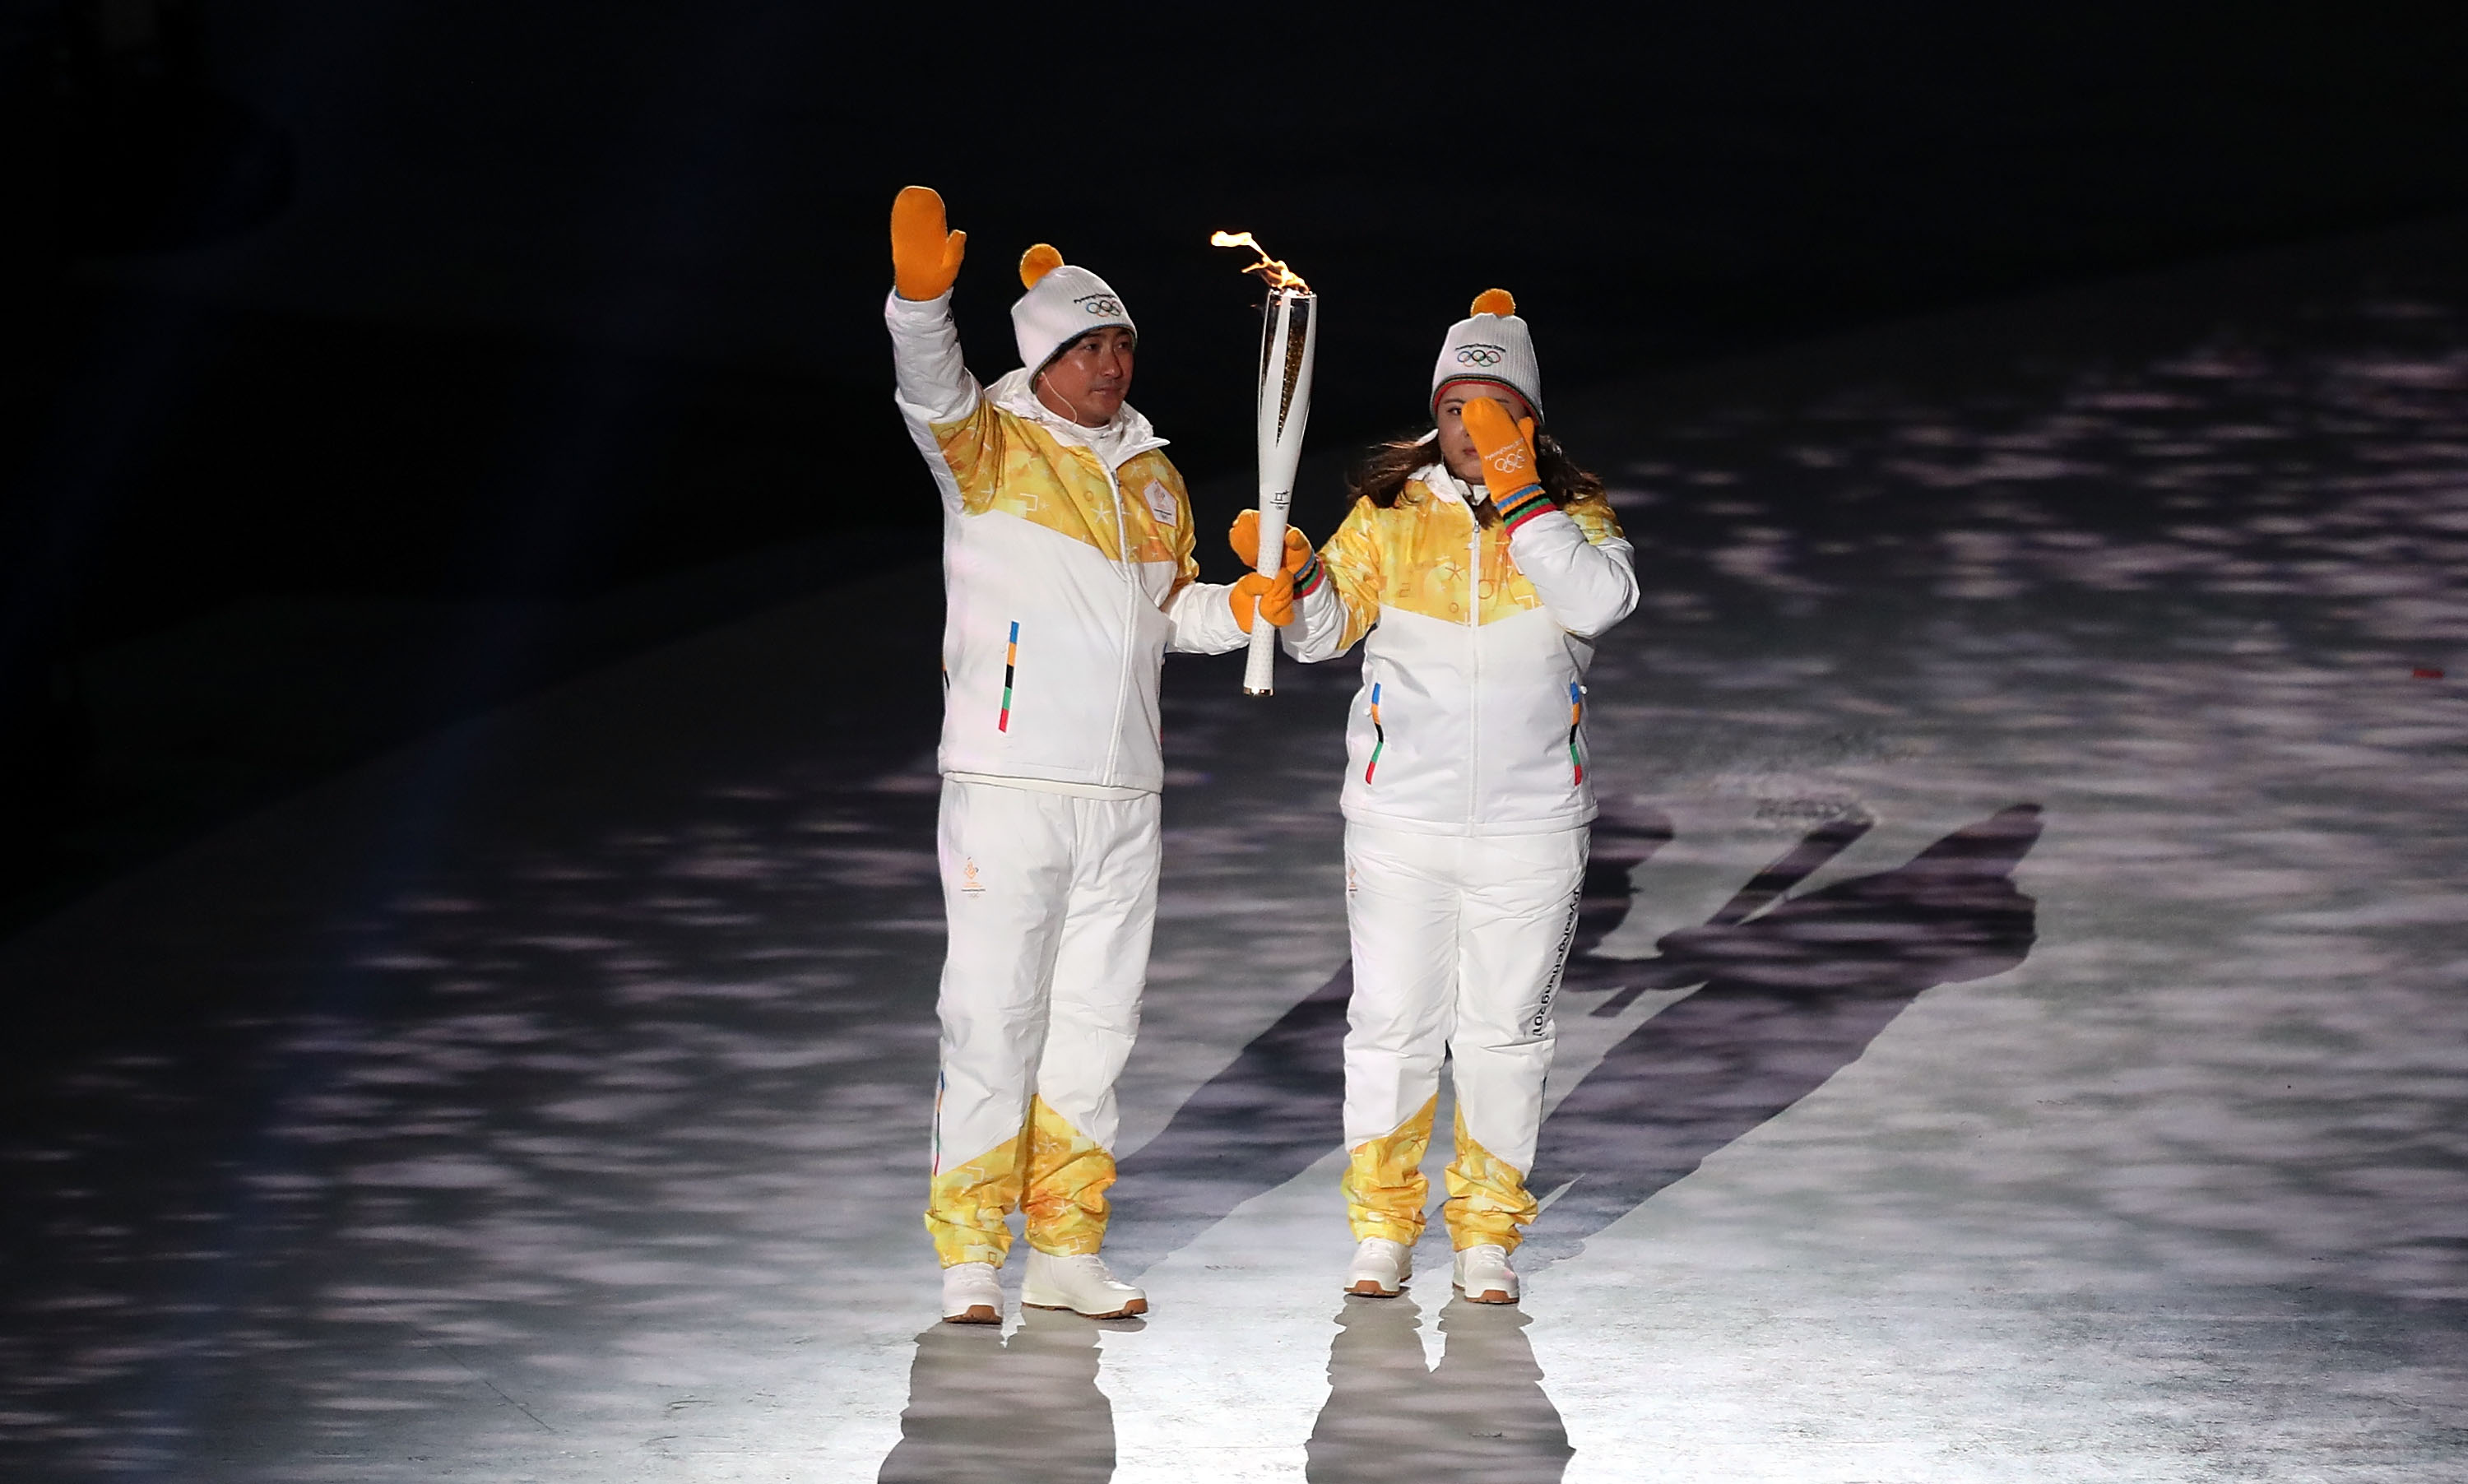 PYEONGCHANG-GUN, SOUTH KOREA - FEBRUARY 09:  The Olympic torch is carried to the cauldron during the Opening Ceremony of the PyeongChang 2018 Winter Olympic Games at PyeongChang Olympic Stadium on February 9, 2018 in Pyeongchang-gun, South Korea.  fee liable image, copyright © ATP  Amin JAMALI  XXIII. OLYMPIC WINTER GAMES PYEONGCHANG 2018: OPENING CEREMONY,  PyeongChang, Korea, Winter Olympics; PyeongChang Olympic Stadium, on 9. February 2018, fee liable image, copyright © ATP / Amin JAMALI  Featuring: The Olympic torch is carried to the cauldron Where: Pyeongchang, Gangwon Province, South Korea When: 09 Feb 2018 Credit: ATP/WENN.com  **Not available for publication in Germany or France. No Contact Music.**